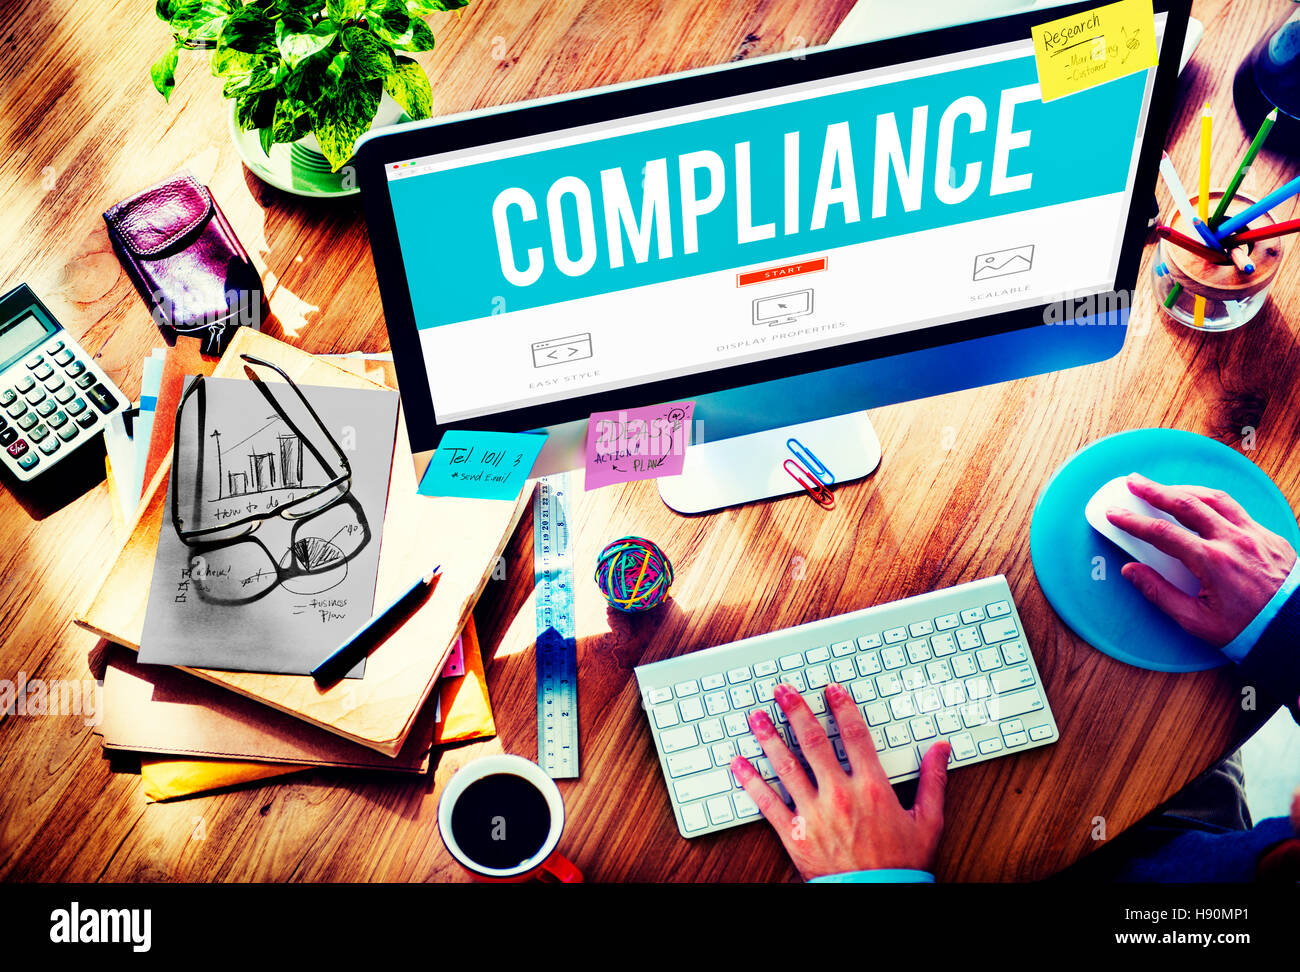 Compliance Rules Regulations Policies Codes Concept - Stock Image